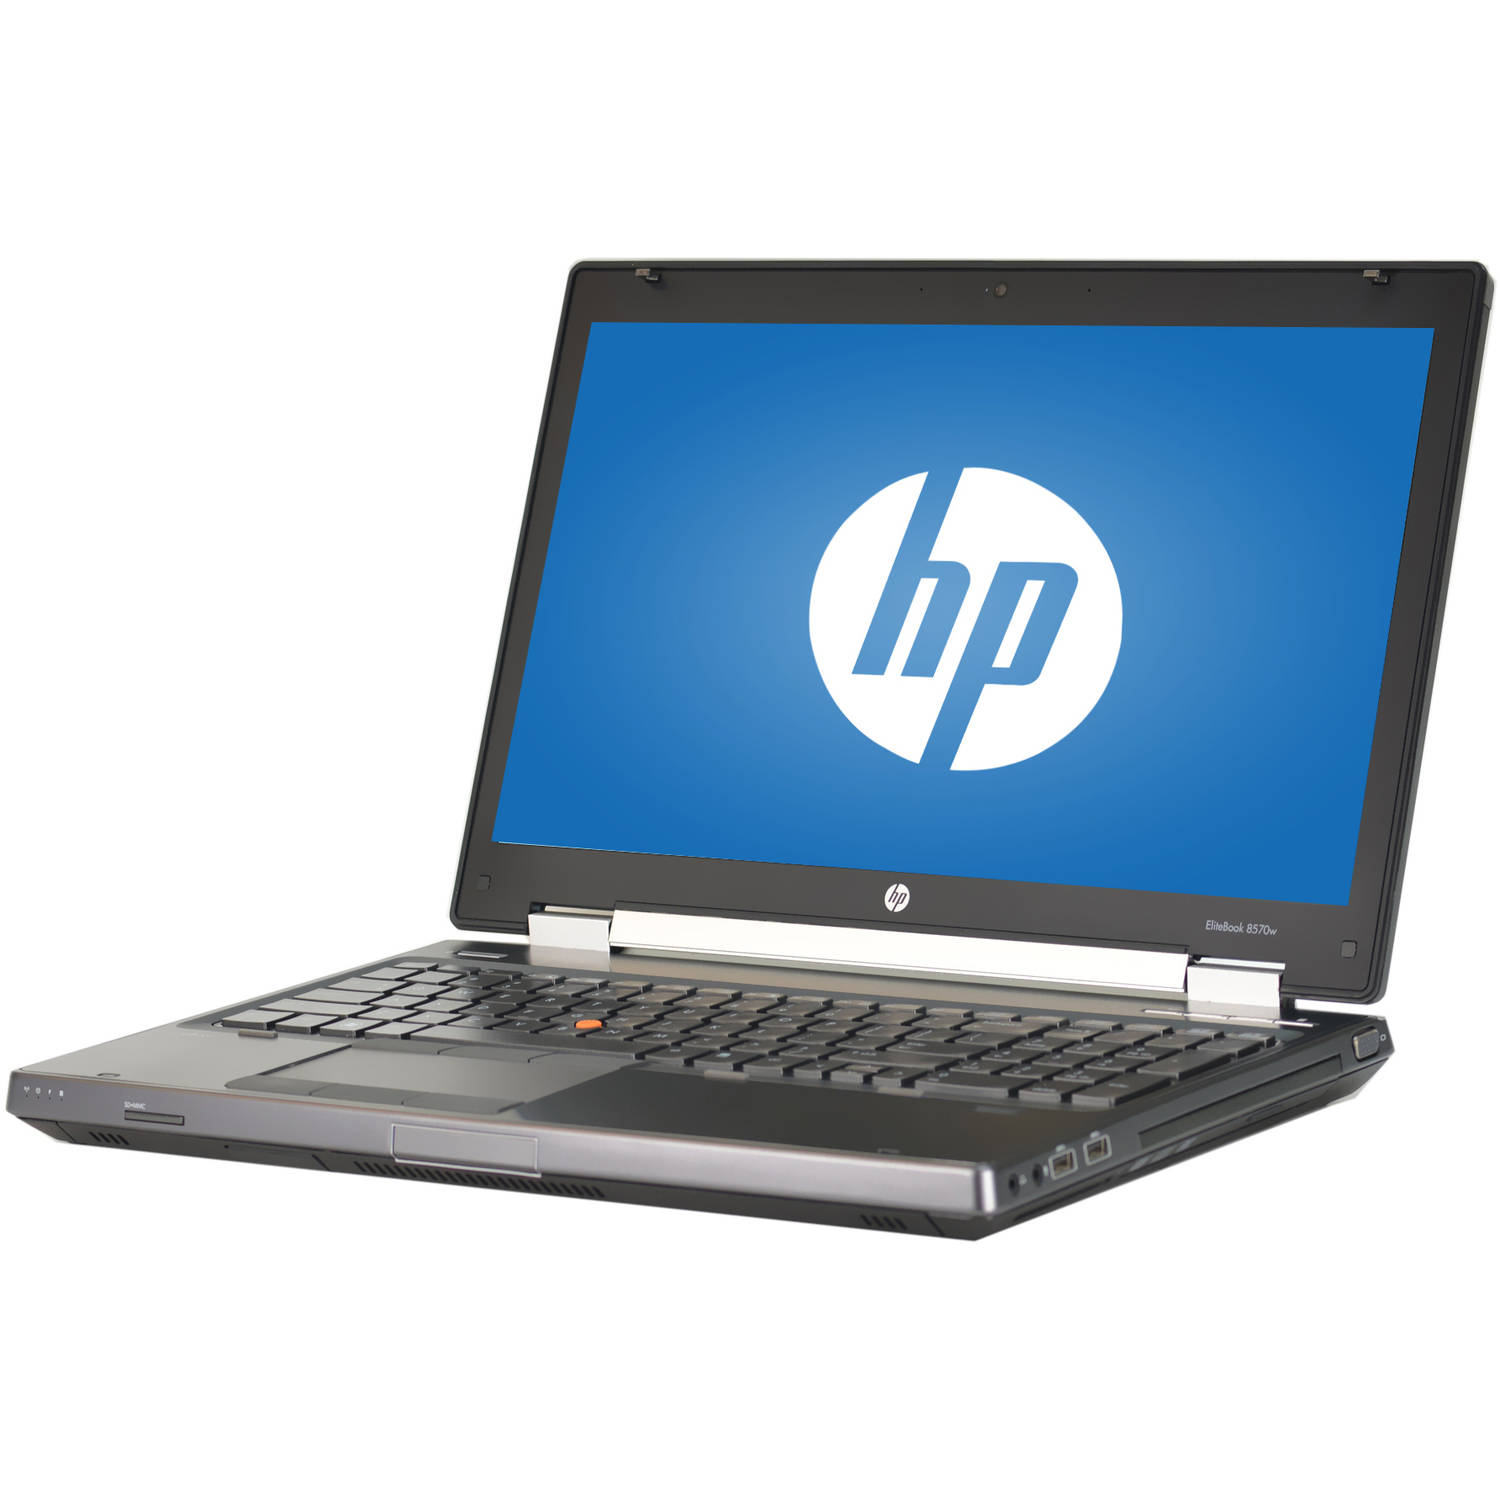 "Refurbished HP 15.6"" EliteBook 8570W Laptop PC with Intel Core i7-3720QM Processor, 16GB Memory, 256GB Solid State Drive and Windows 7 Professional"